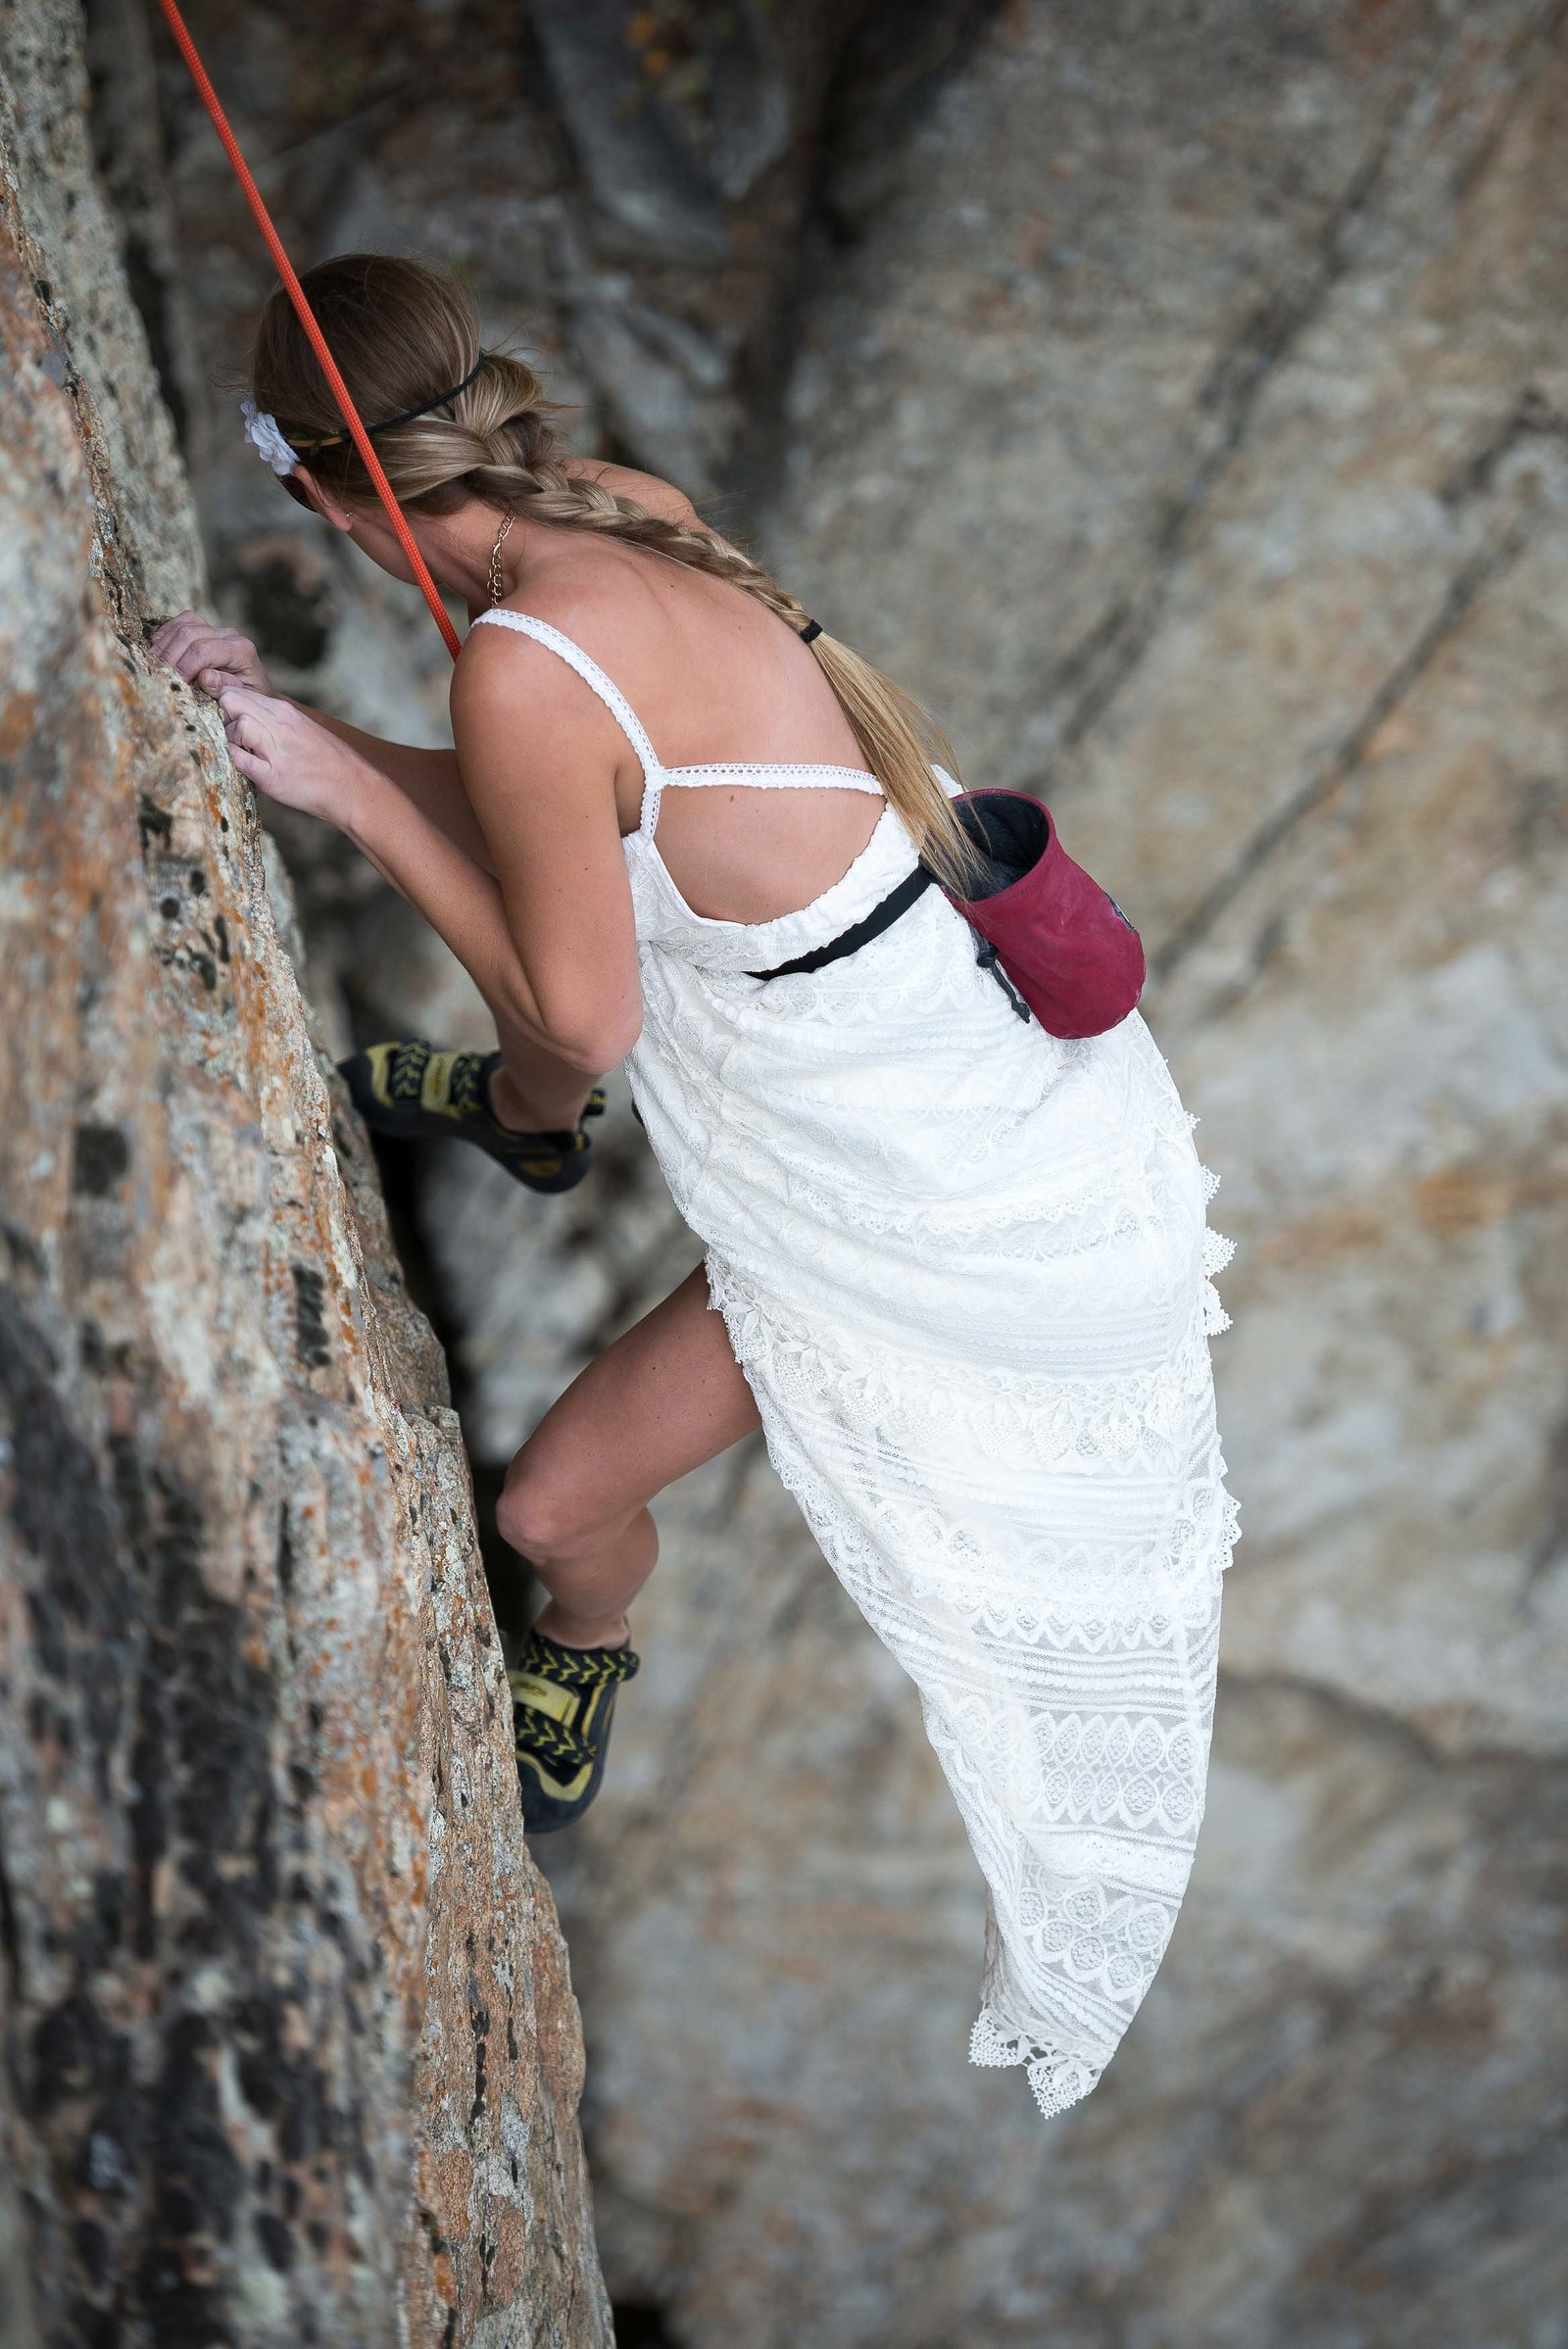 Rock climbing bride in an Active Adventure Wedding  - MAKE Adventure Stories Photgophy